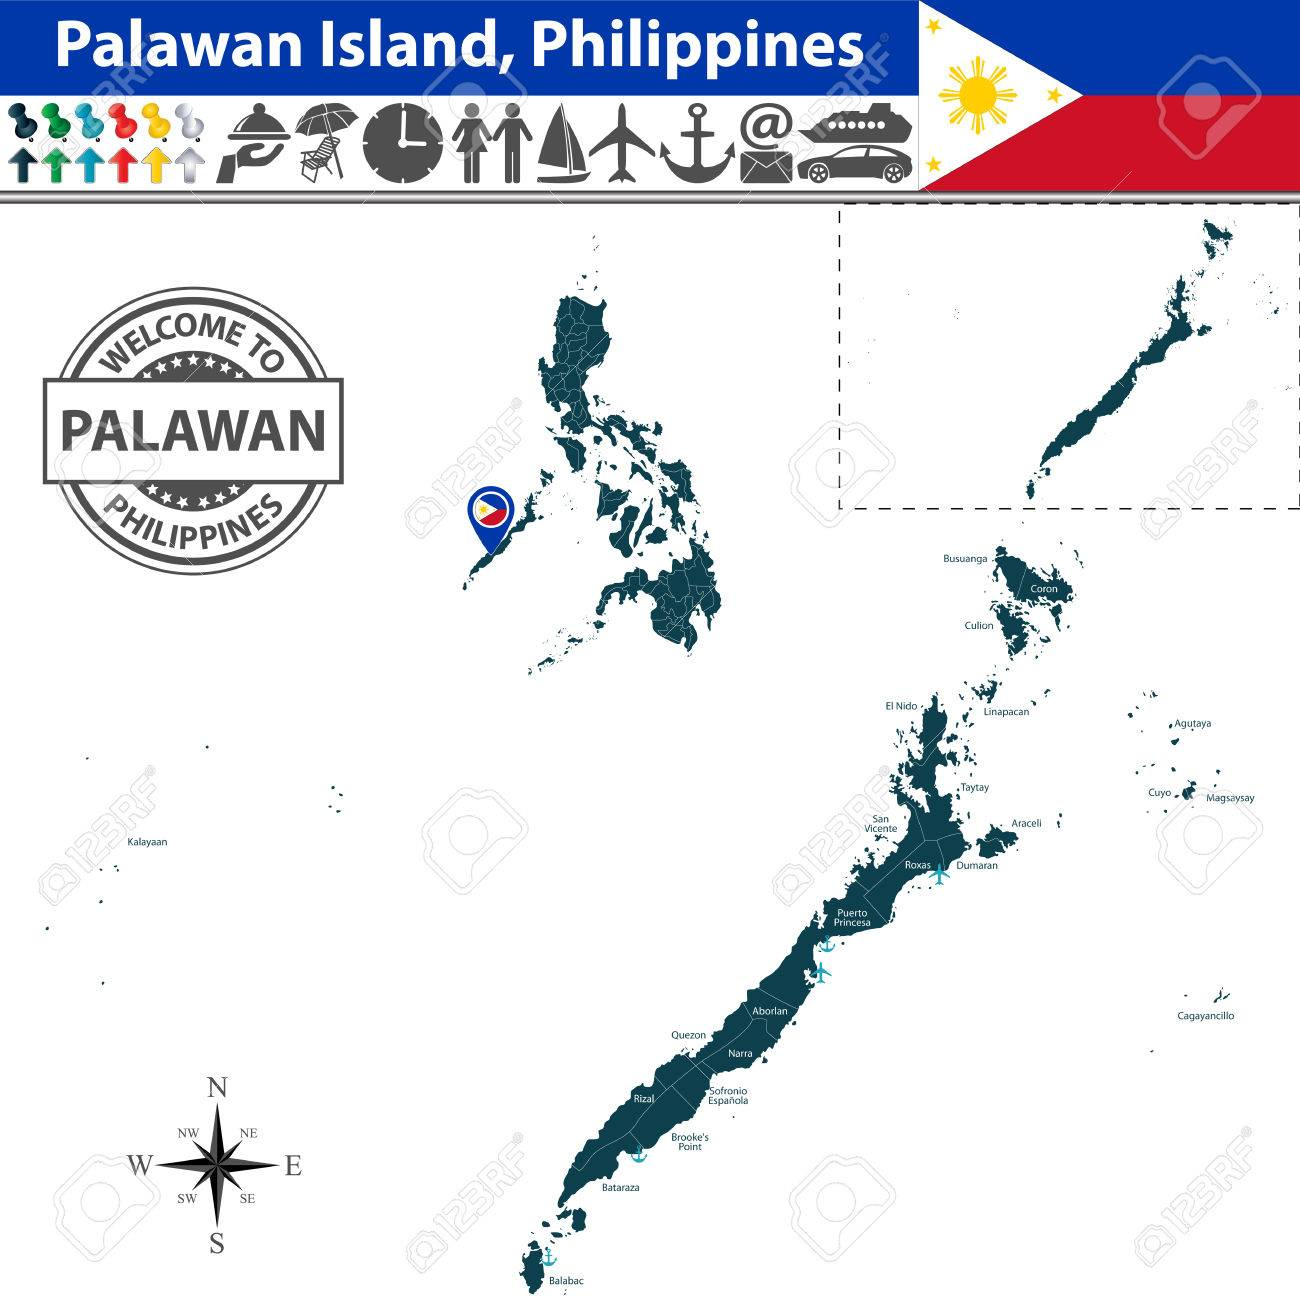 Of Palawan Island Philippines Map Contains Regions And Travel